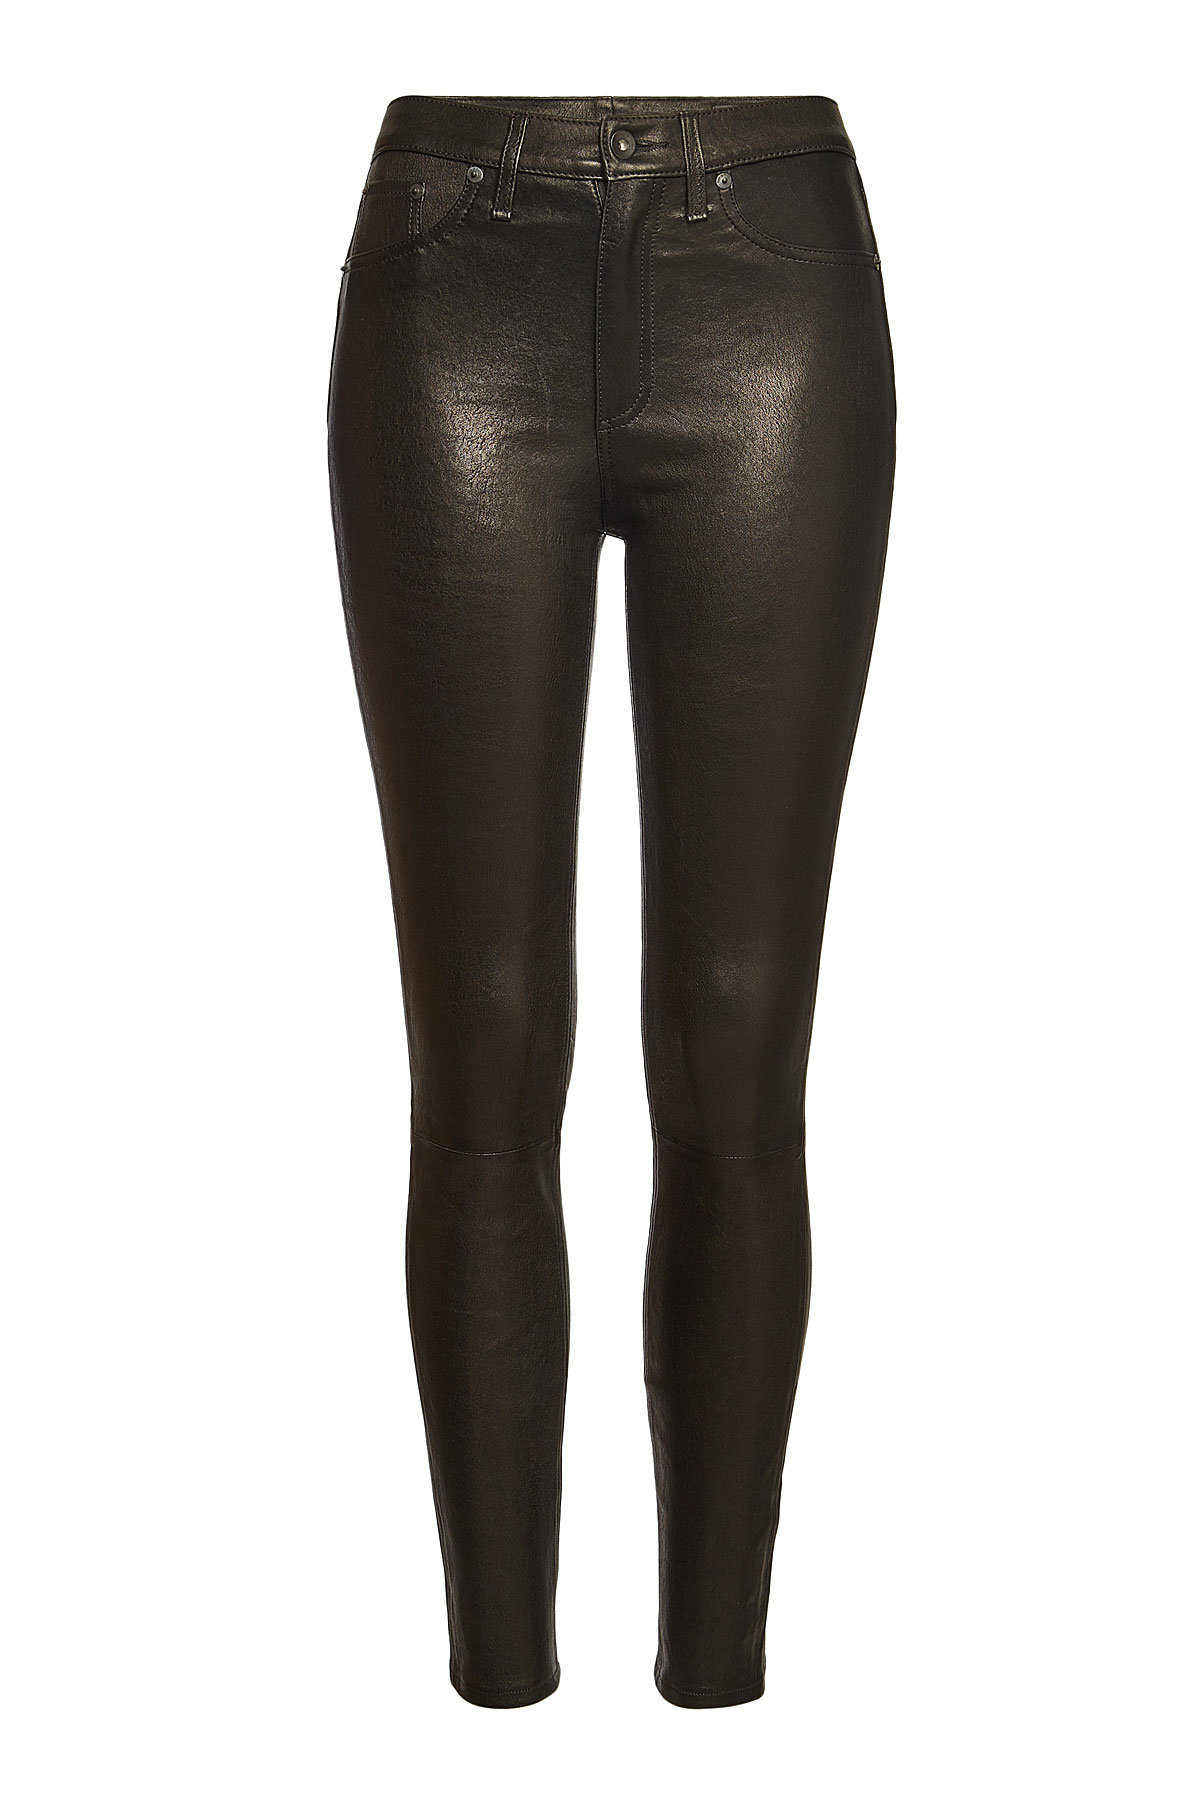 The ultimate wardrobe staple with a figure-sculpting fit, these leather pants from Rag & Bone/JEAN will elevate your edit in a hot minute. The high-rise waist and black colour keep them versatile through all four seasons.  £ 915